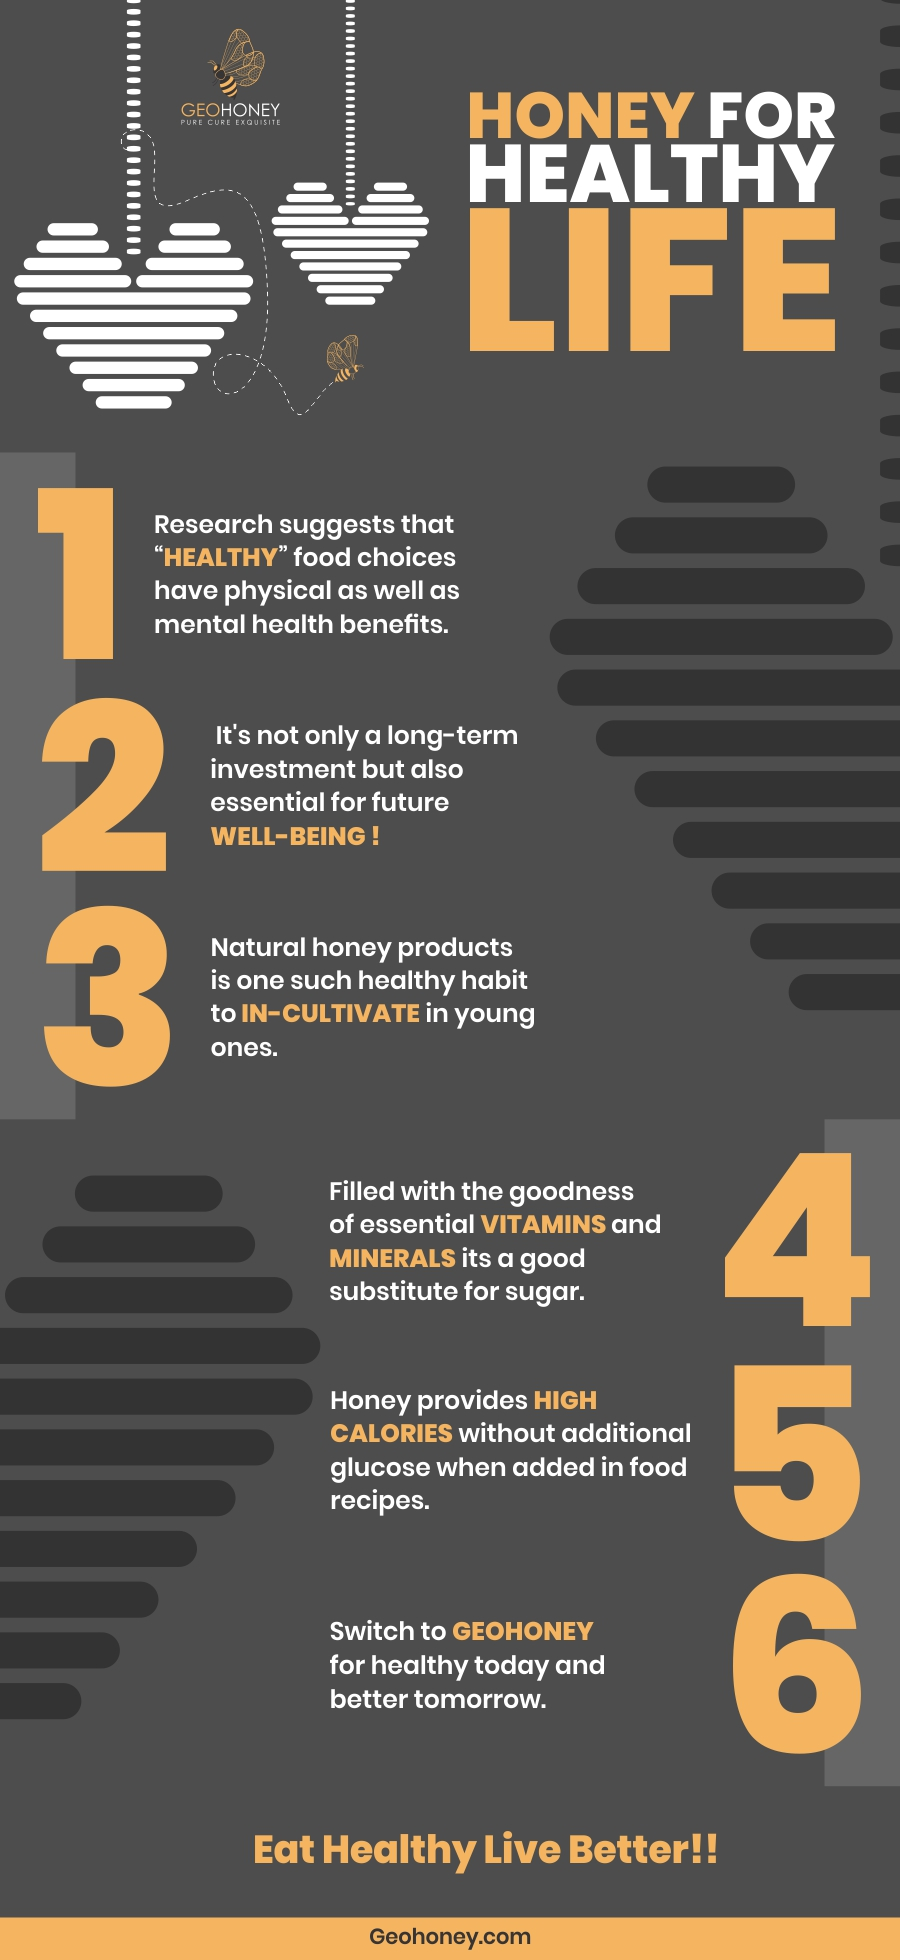 Honey for life Infographic